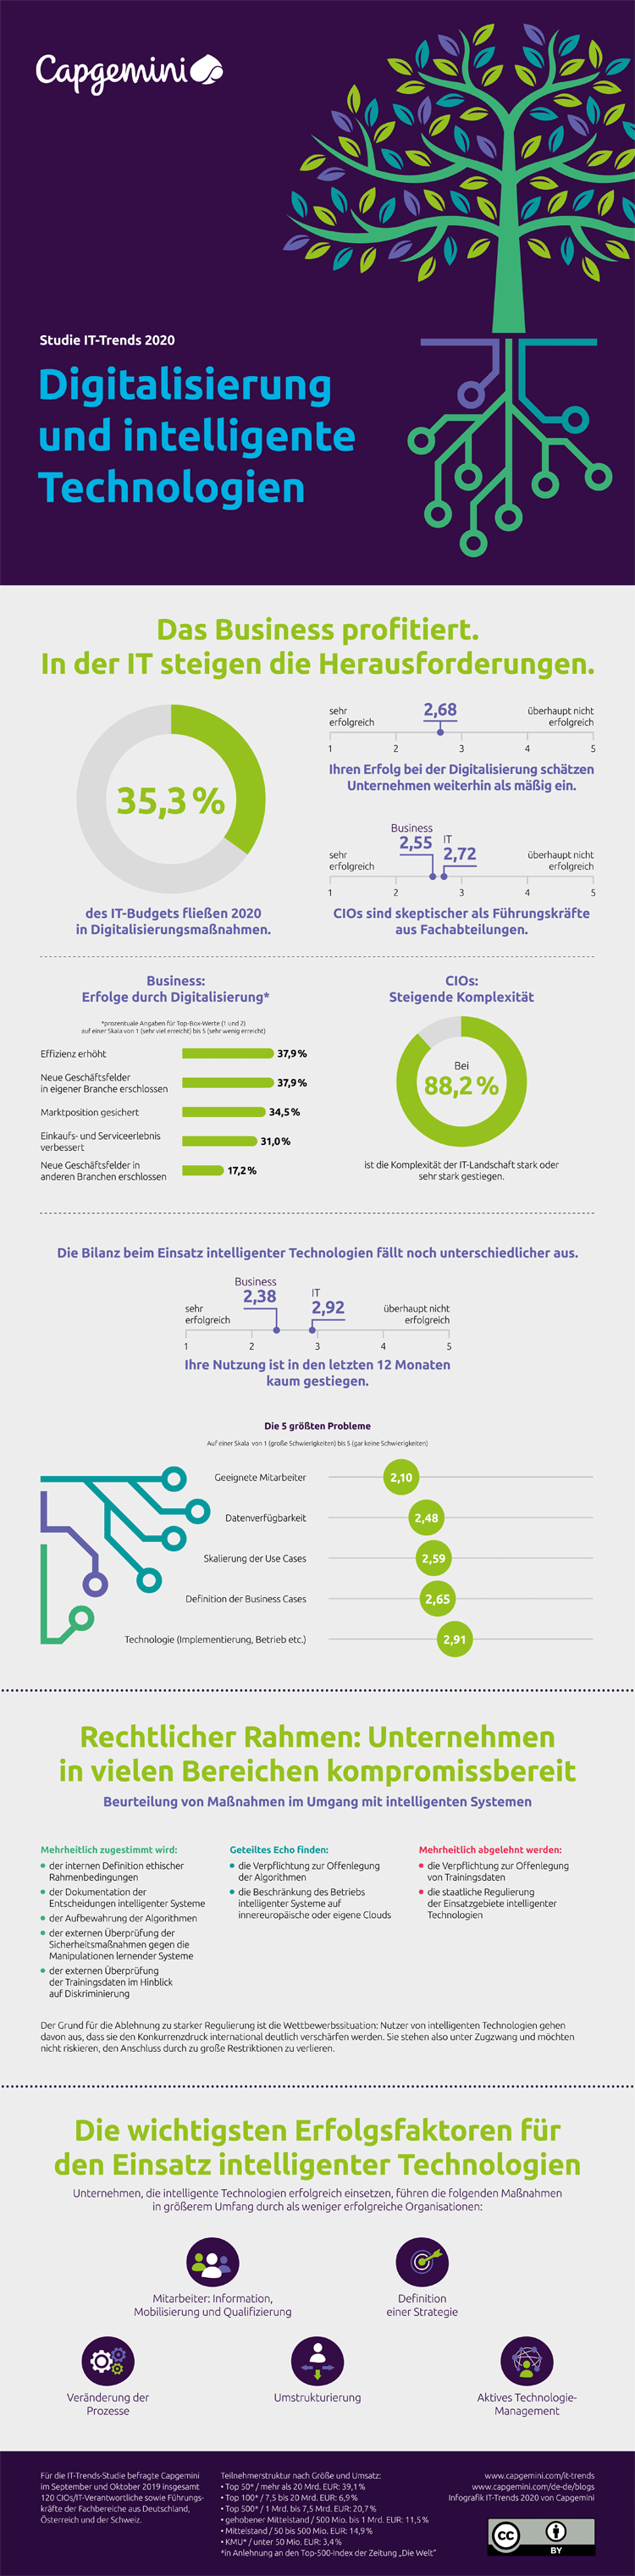 Infografik: Technologie- und IT-Trends 2020